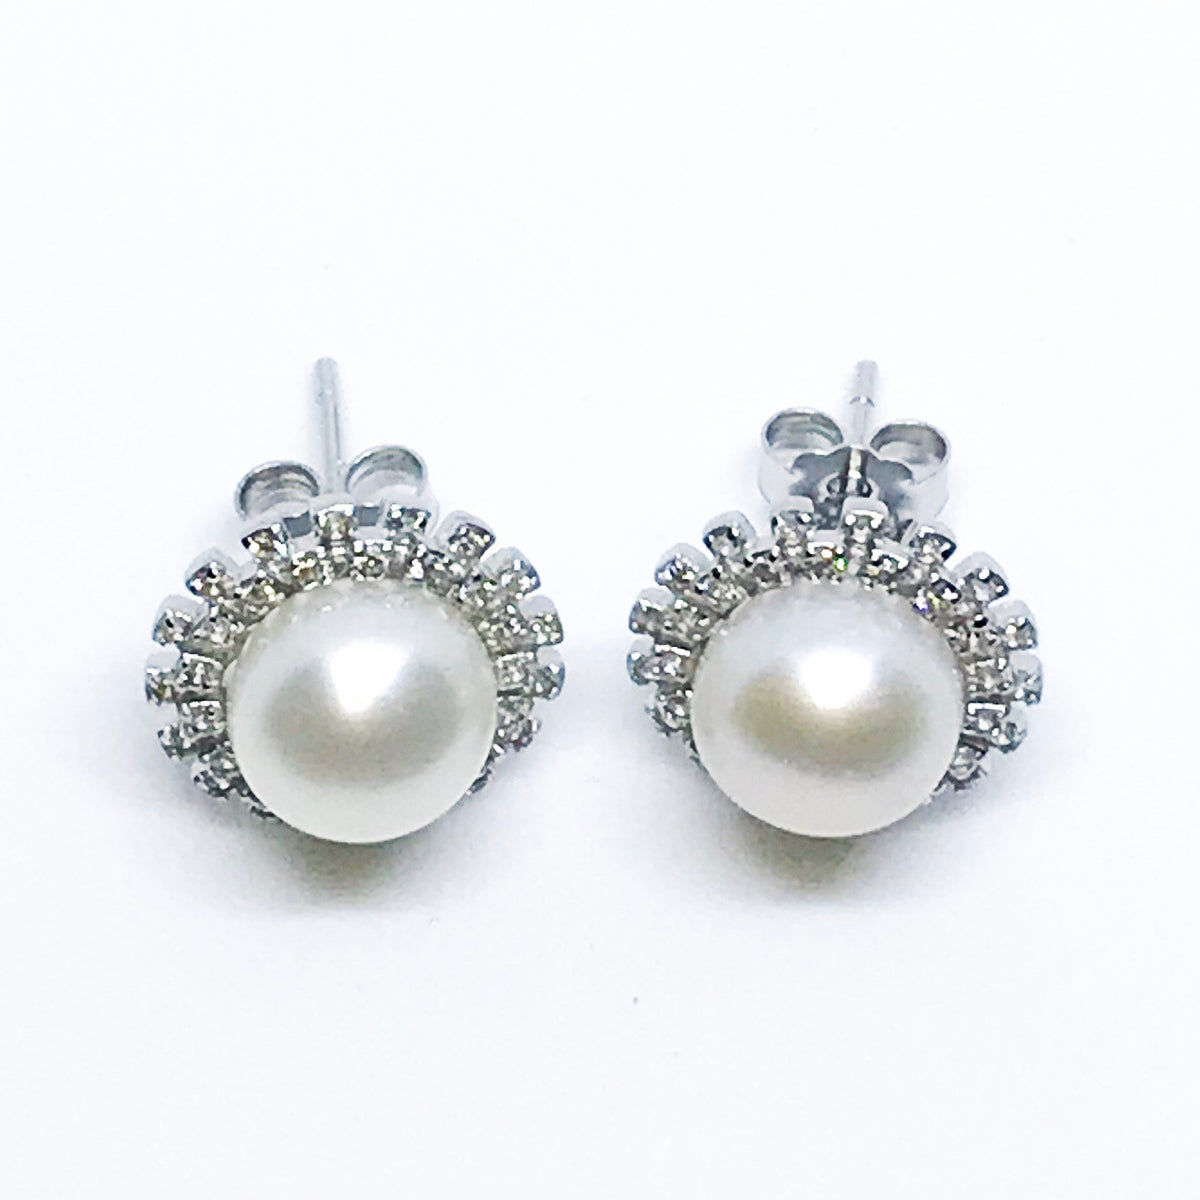 NEW 14k white gold layered on sterling silver pearl with halo studs earrings